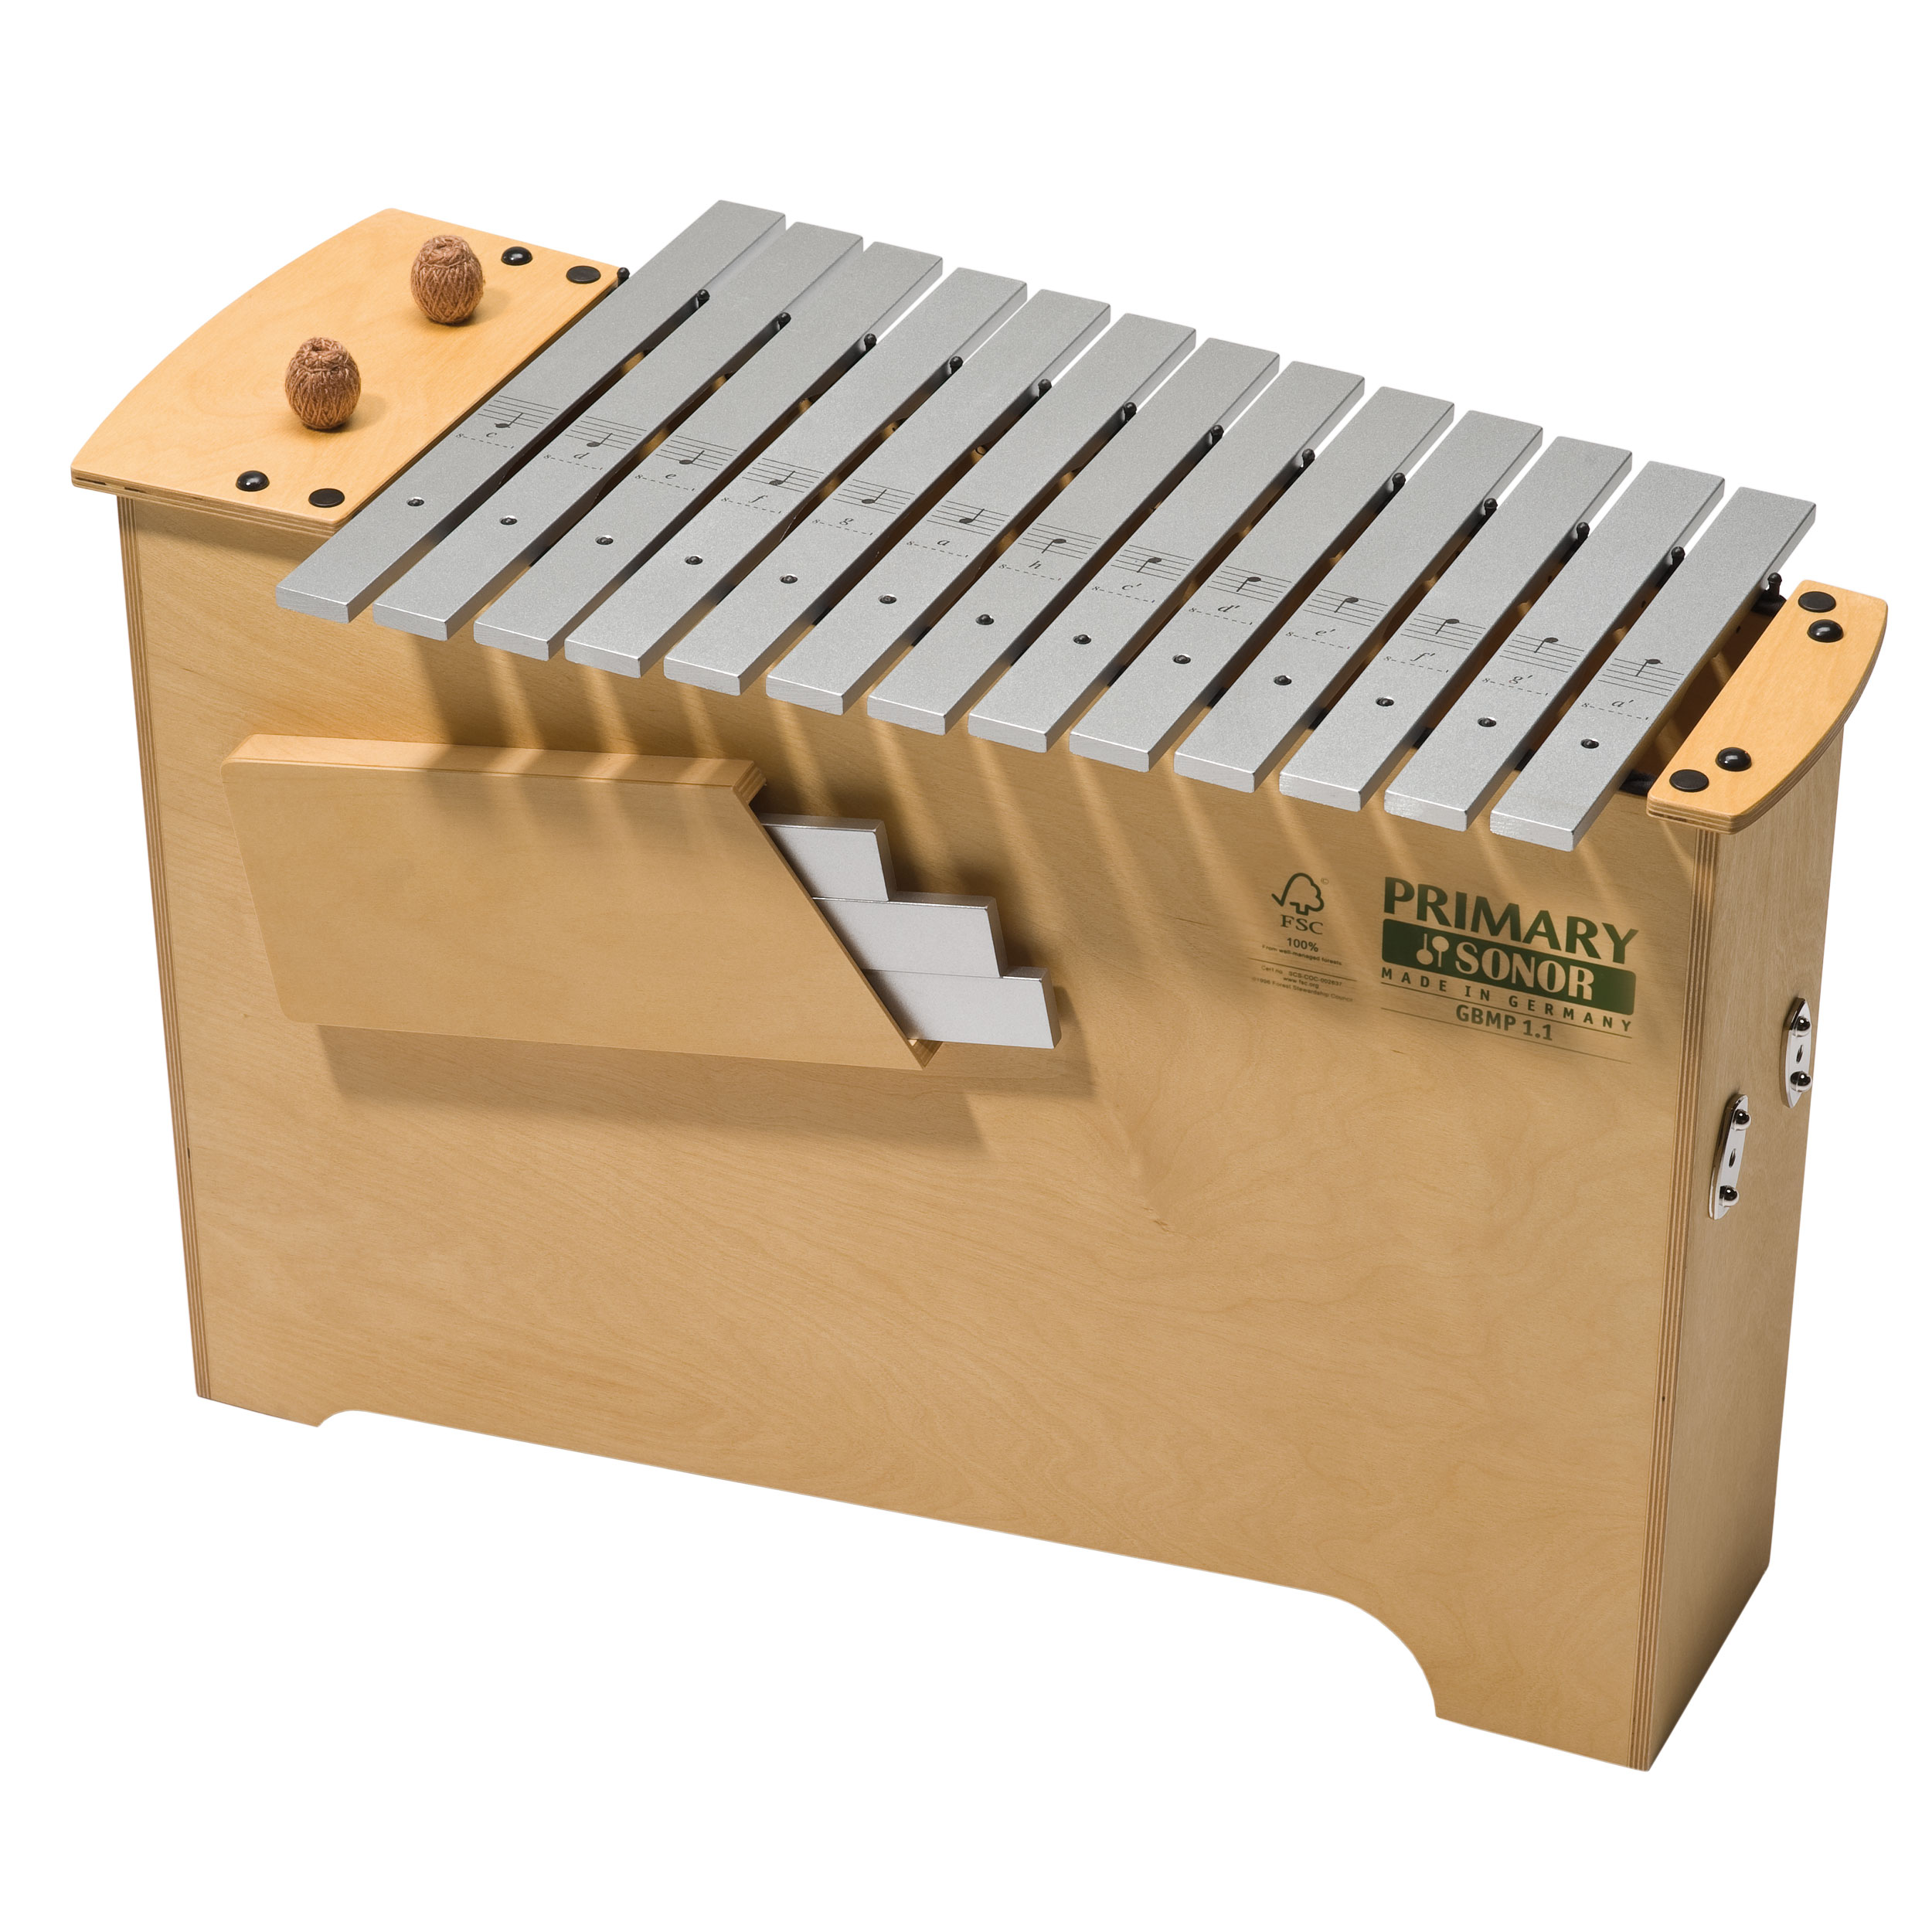 Sonor Orff Primary Bass Diatonic Metallophone